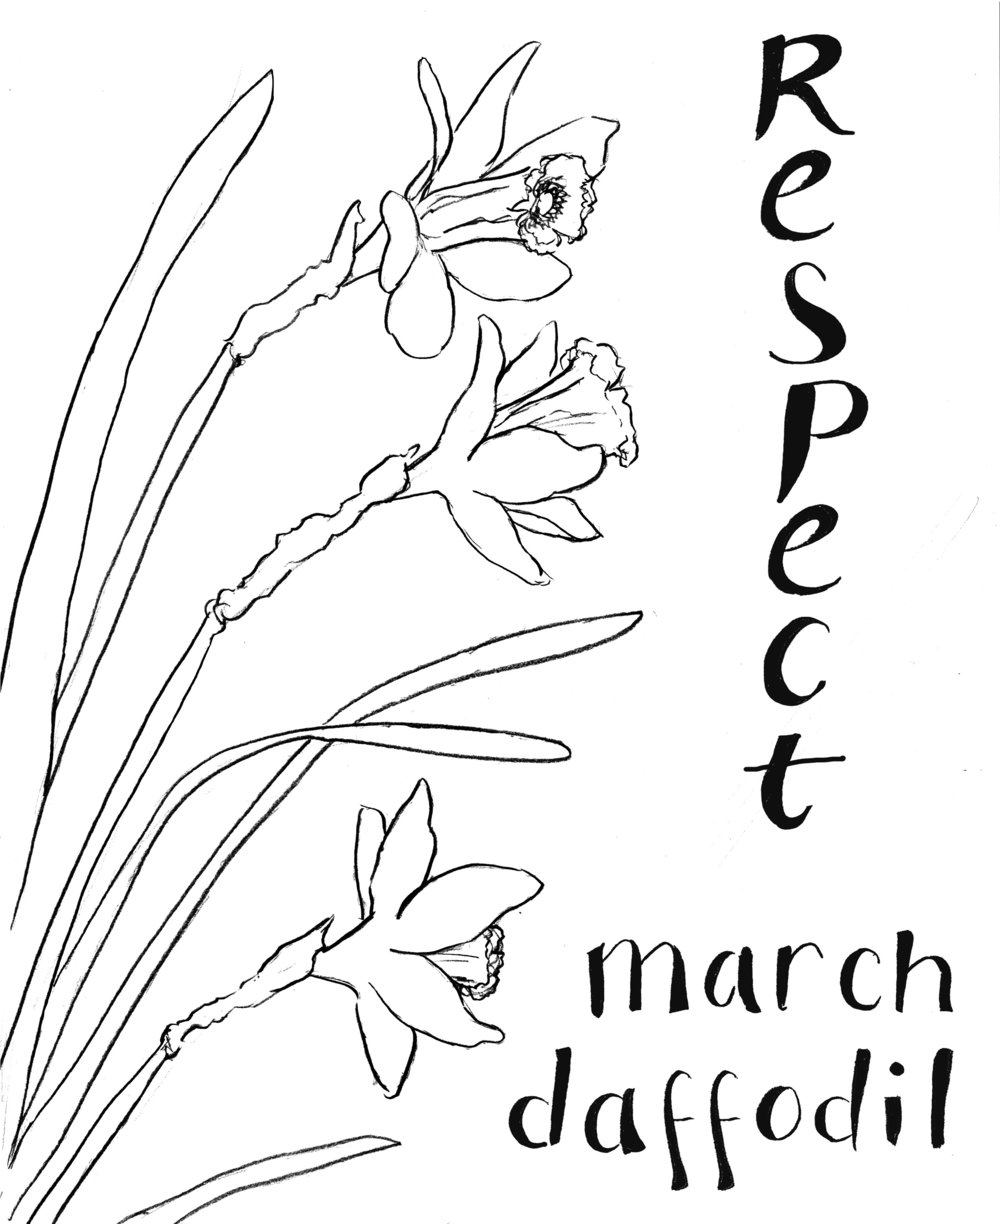 Final March Daffodil with words.jpg